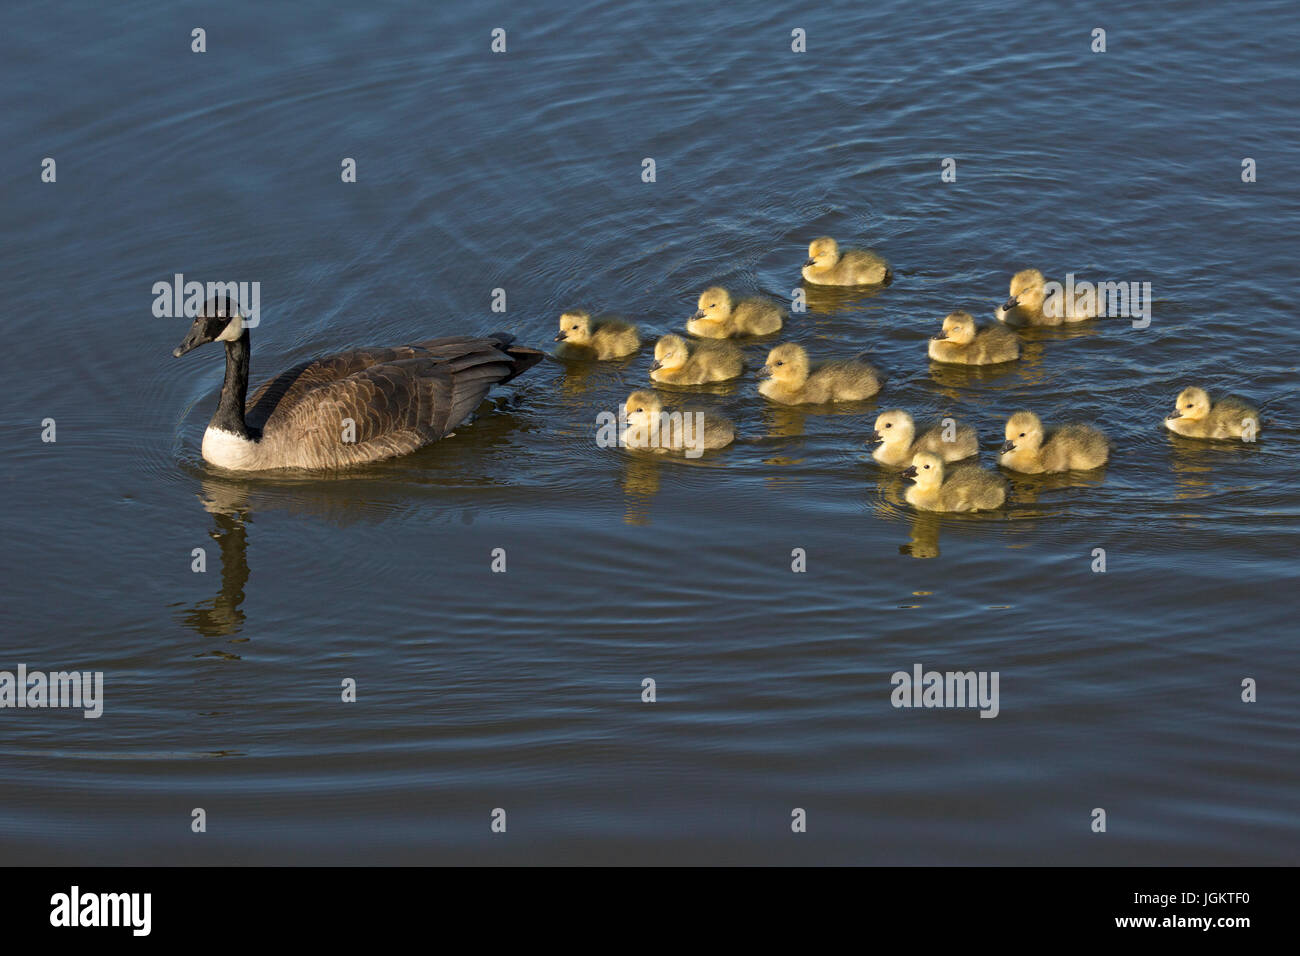 Canada Goose parent leading crèche of goslings (Branta canadensis) - Stock Image